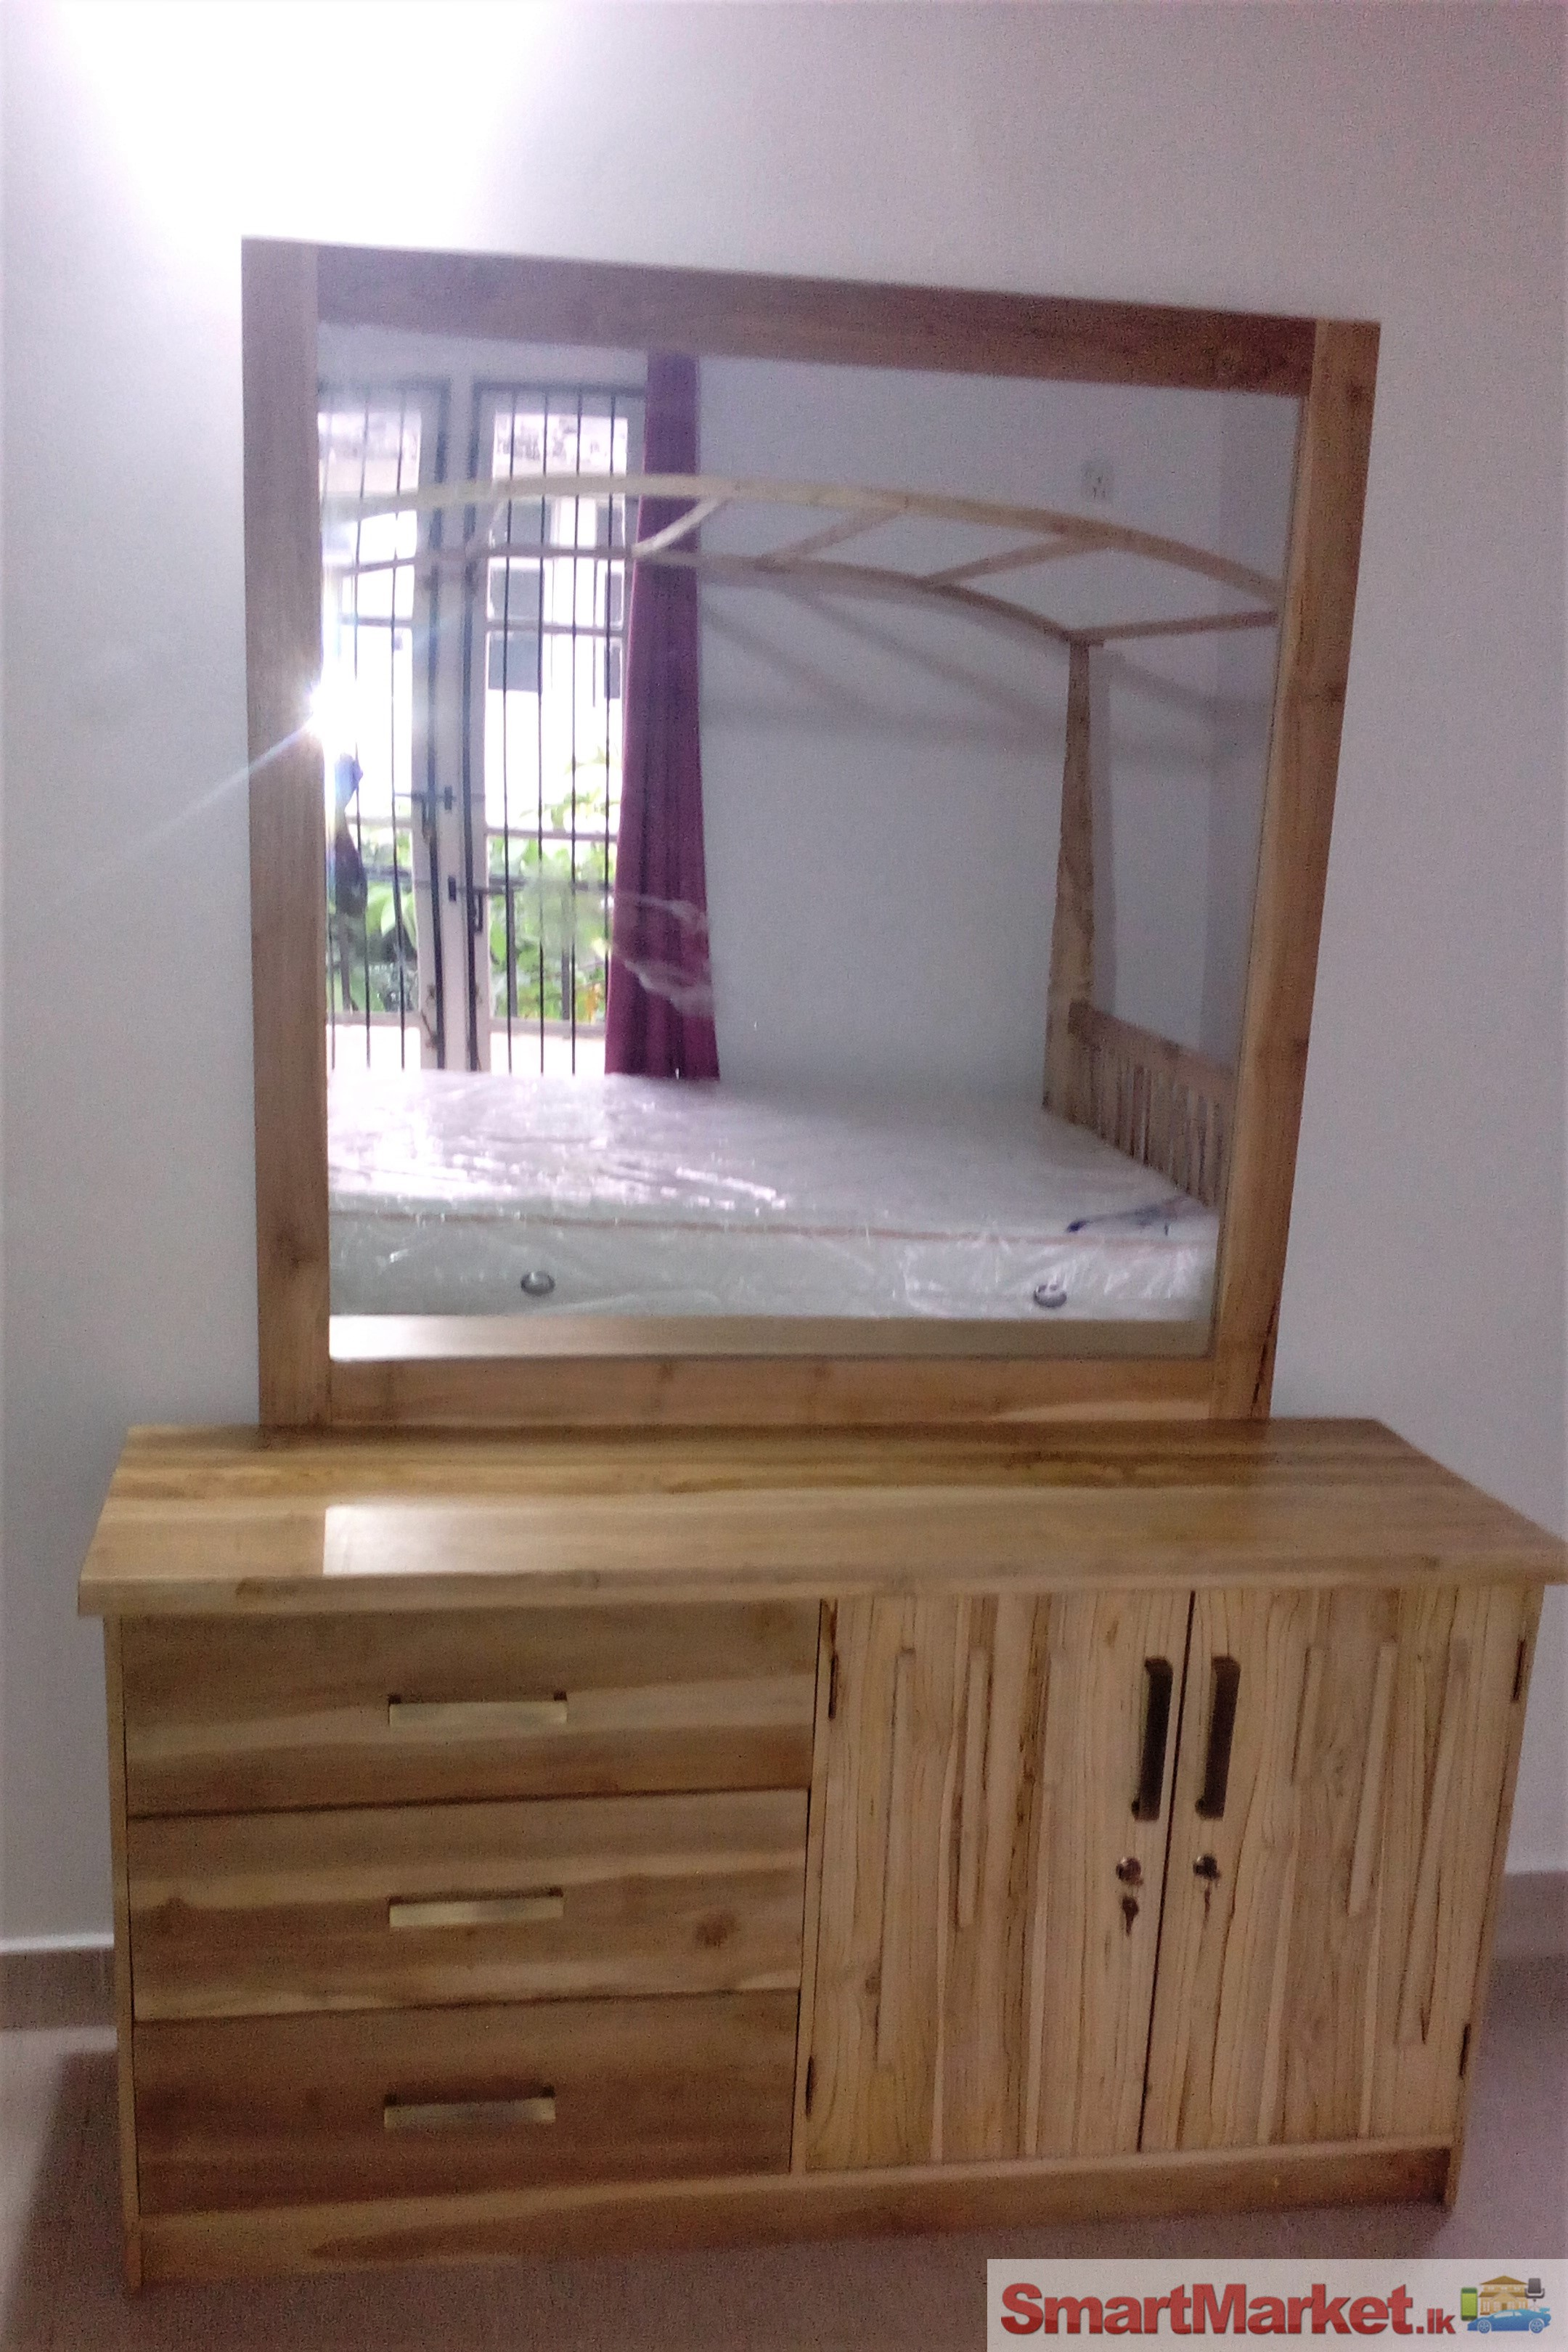 For exquisitely designed quality furniture at affordable for Affordable quality furniture